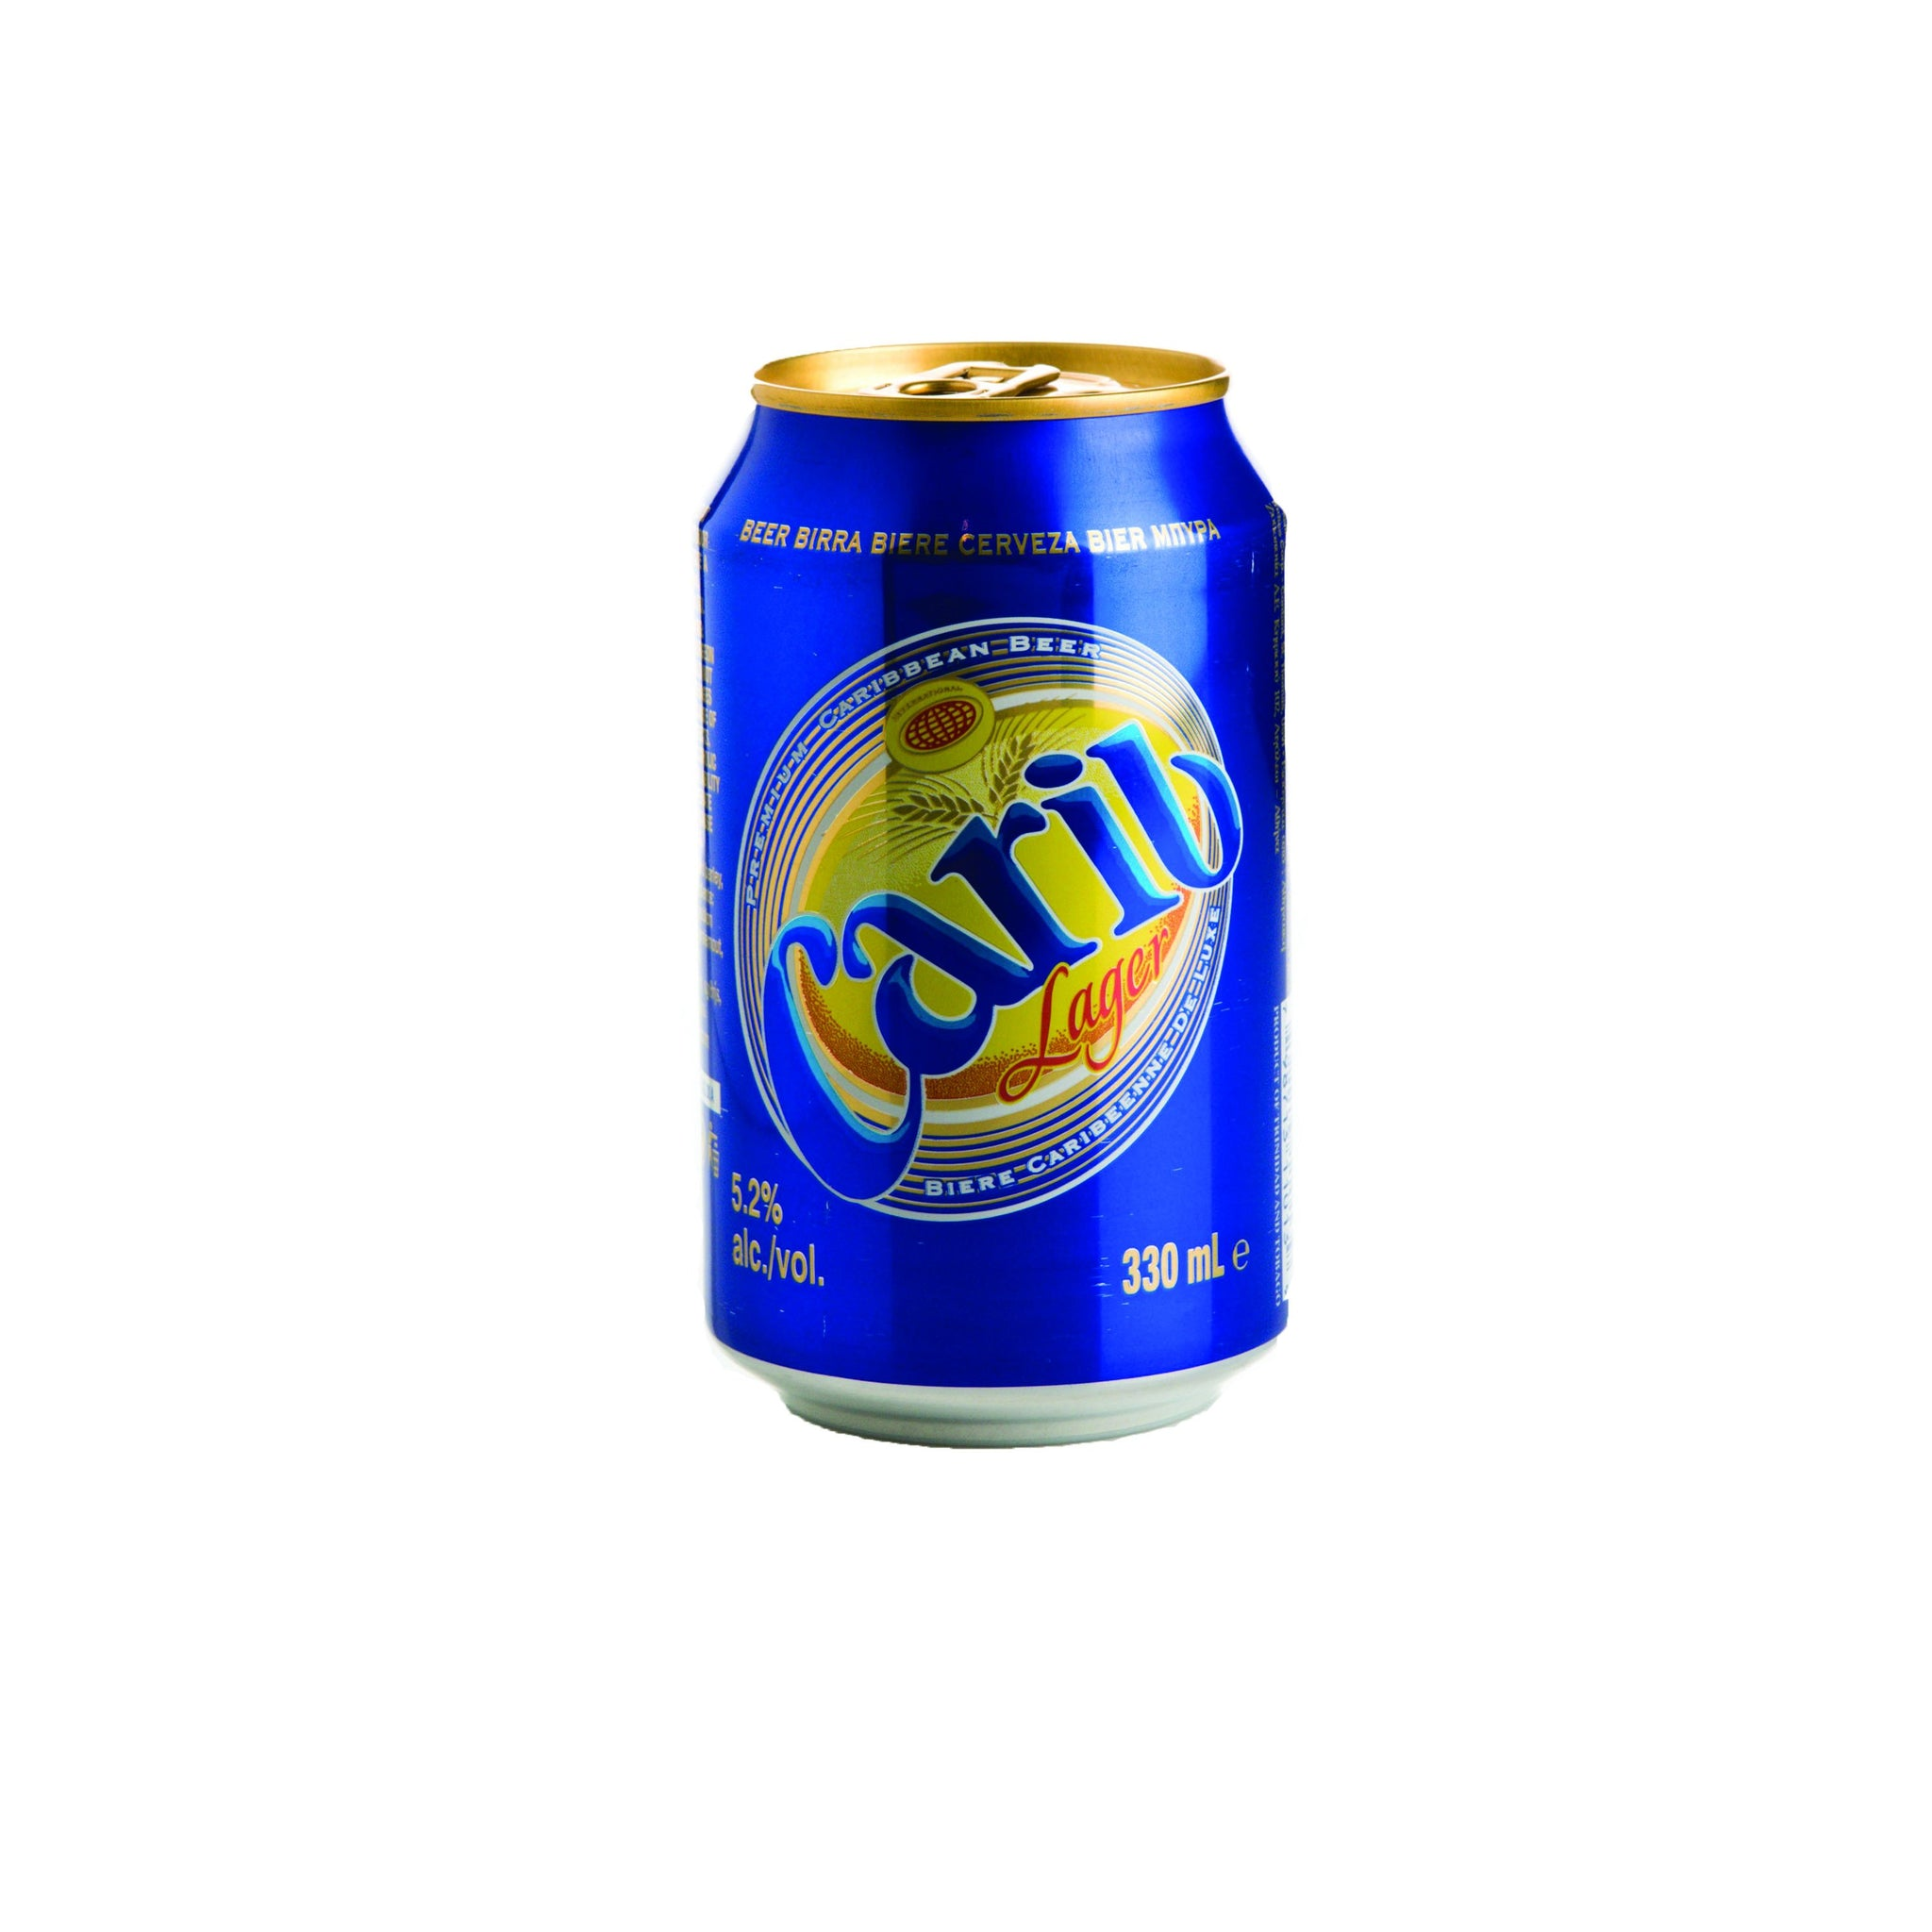 stm>Carib Beer, 24 pack